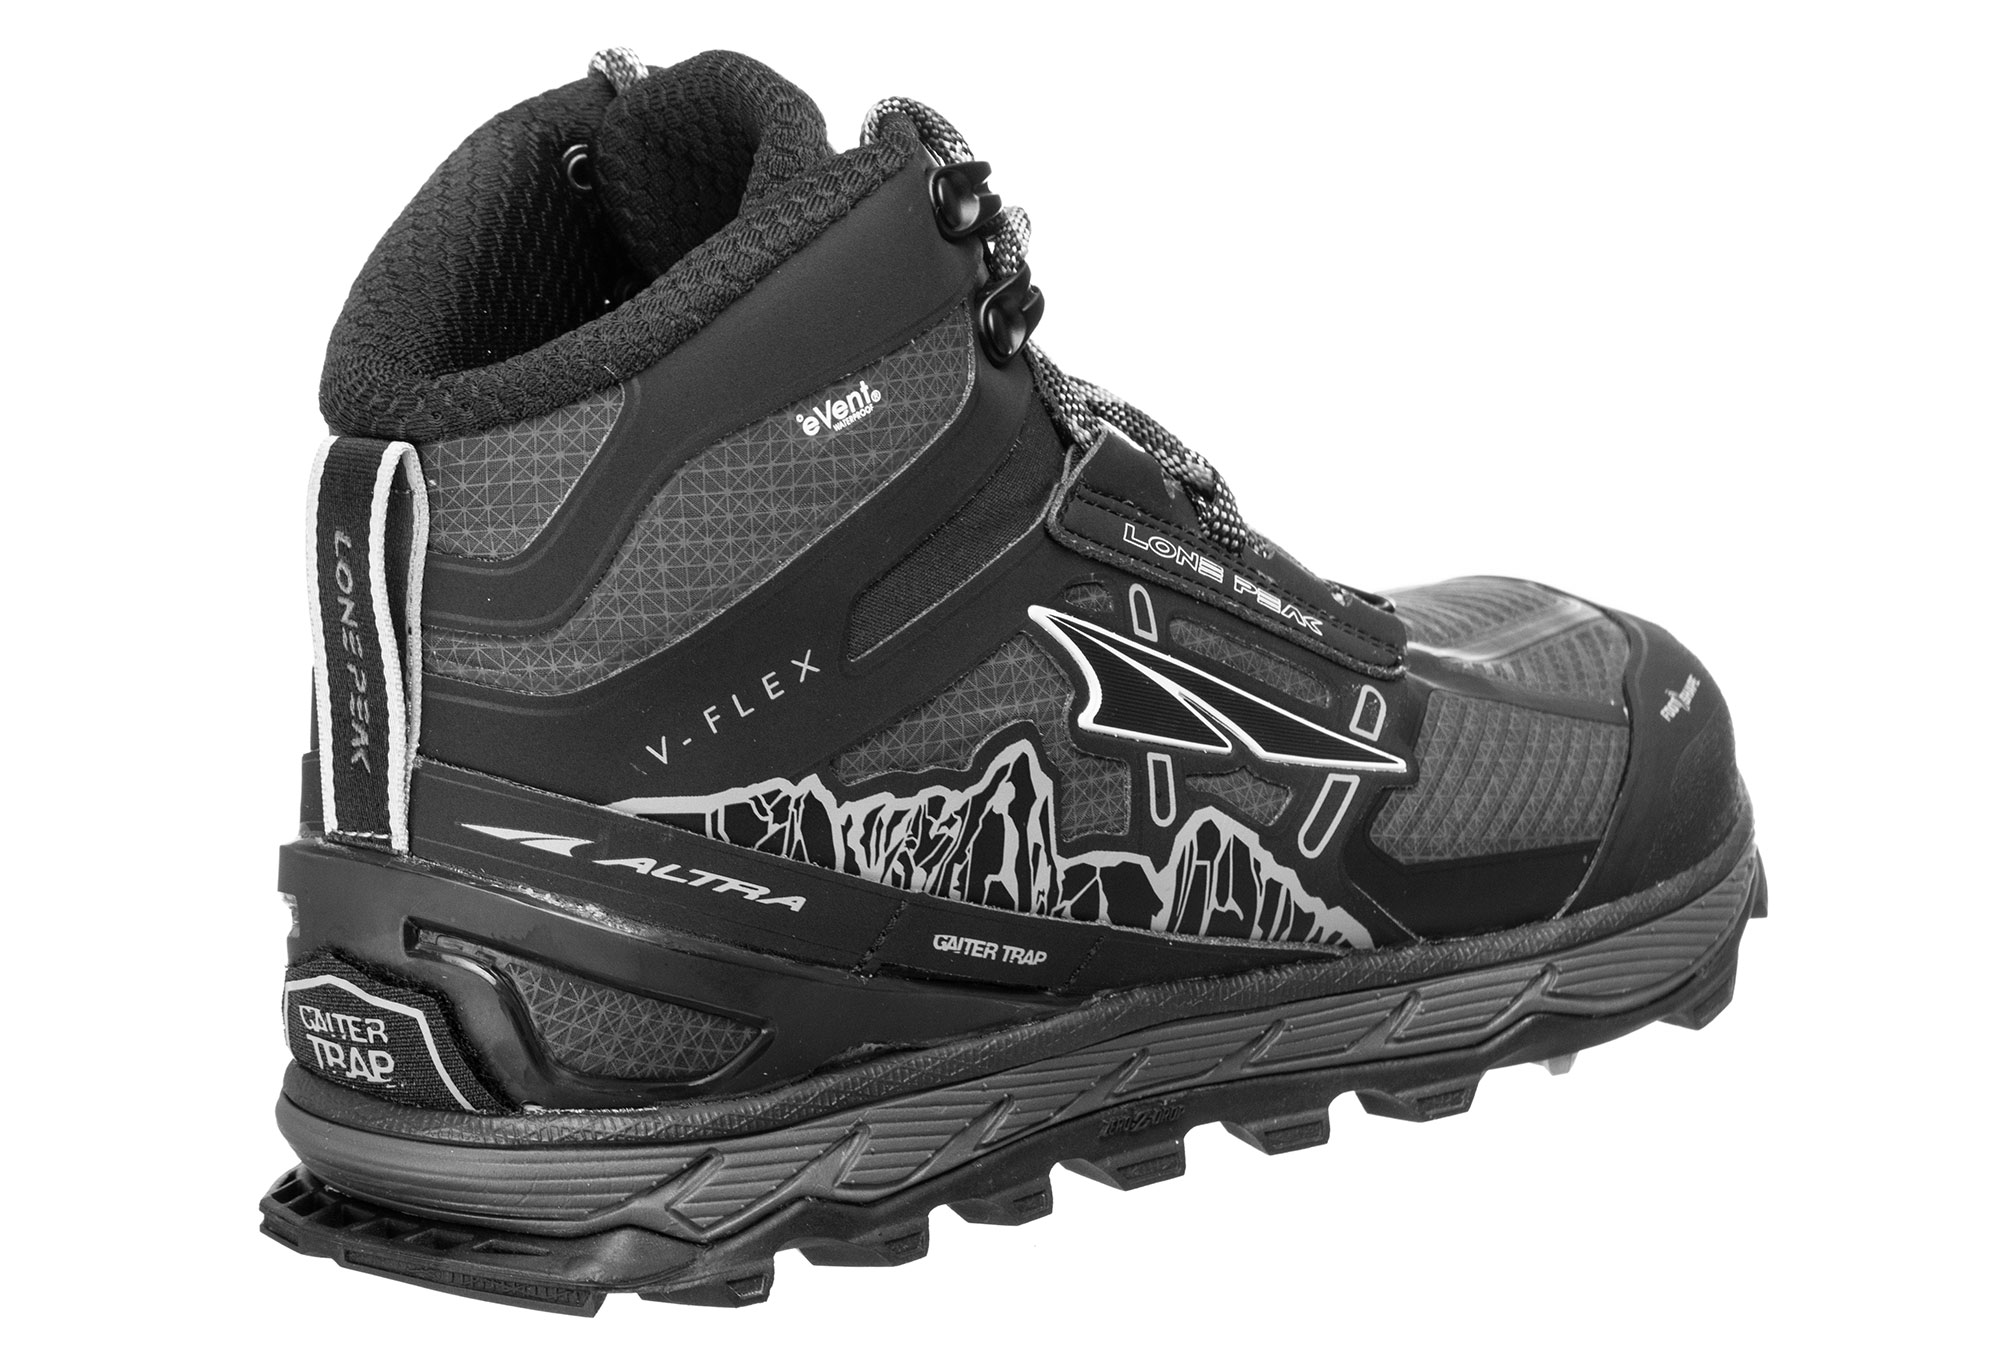 Altra Lone Peak 4 Mid RSM Shoes Red